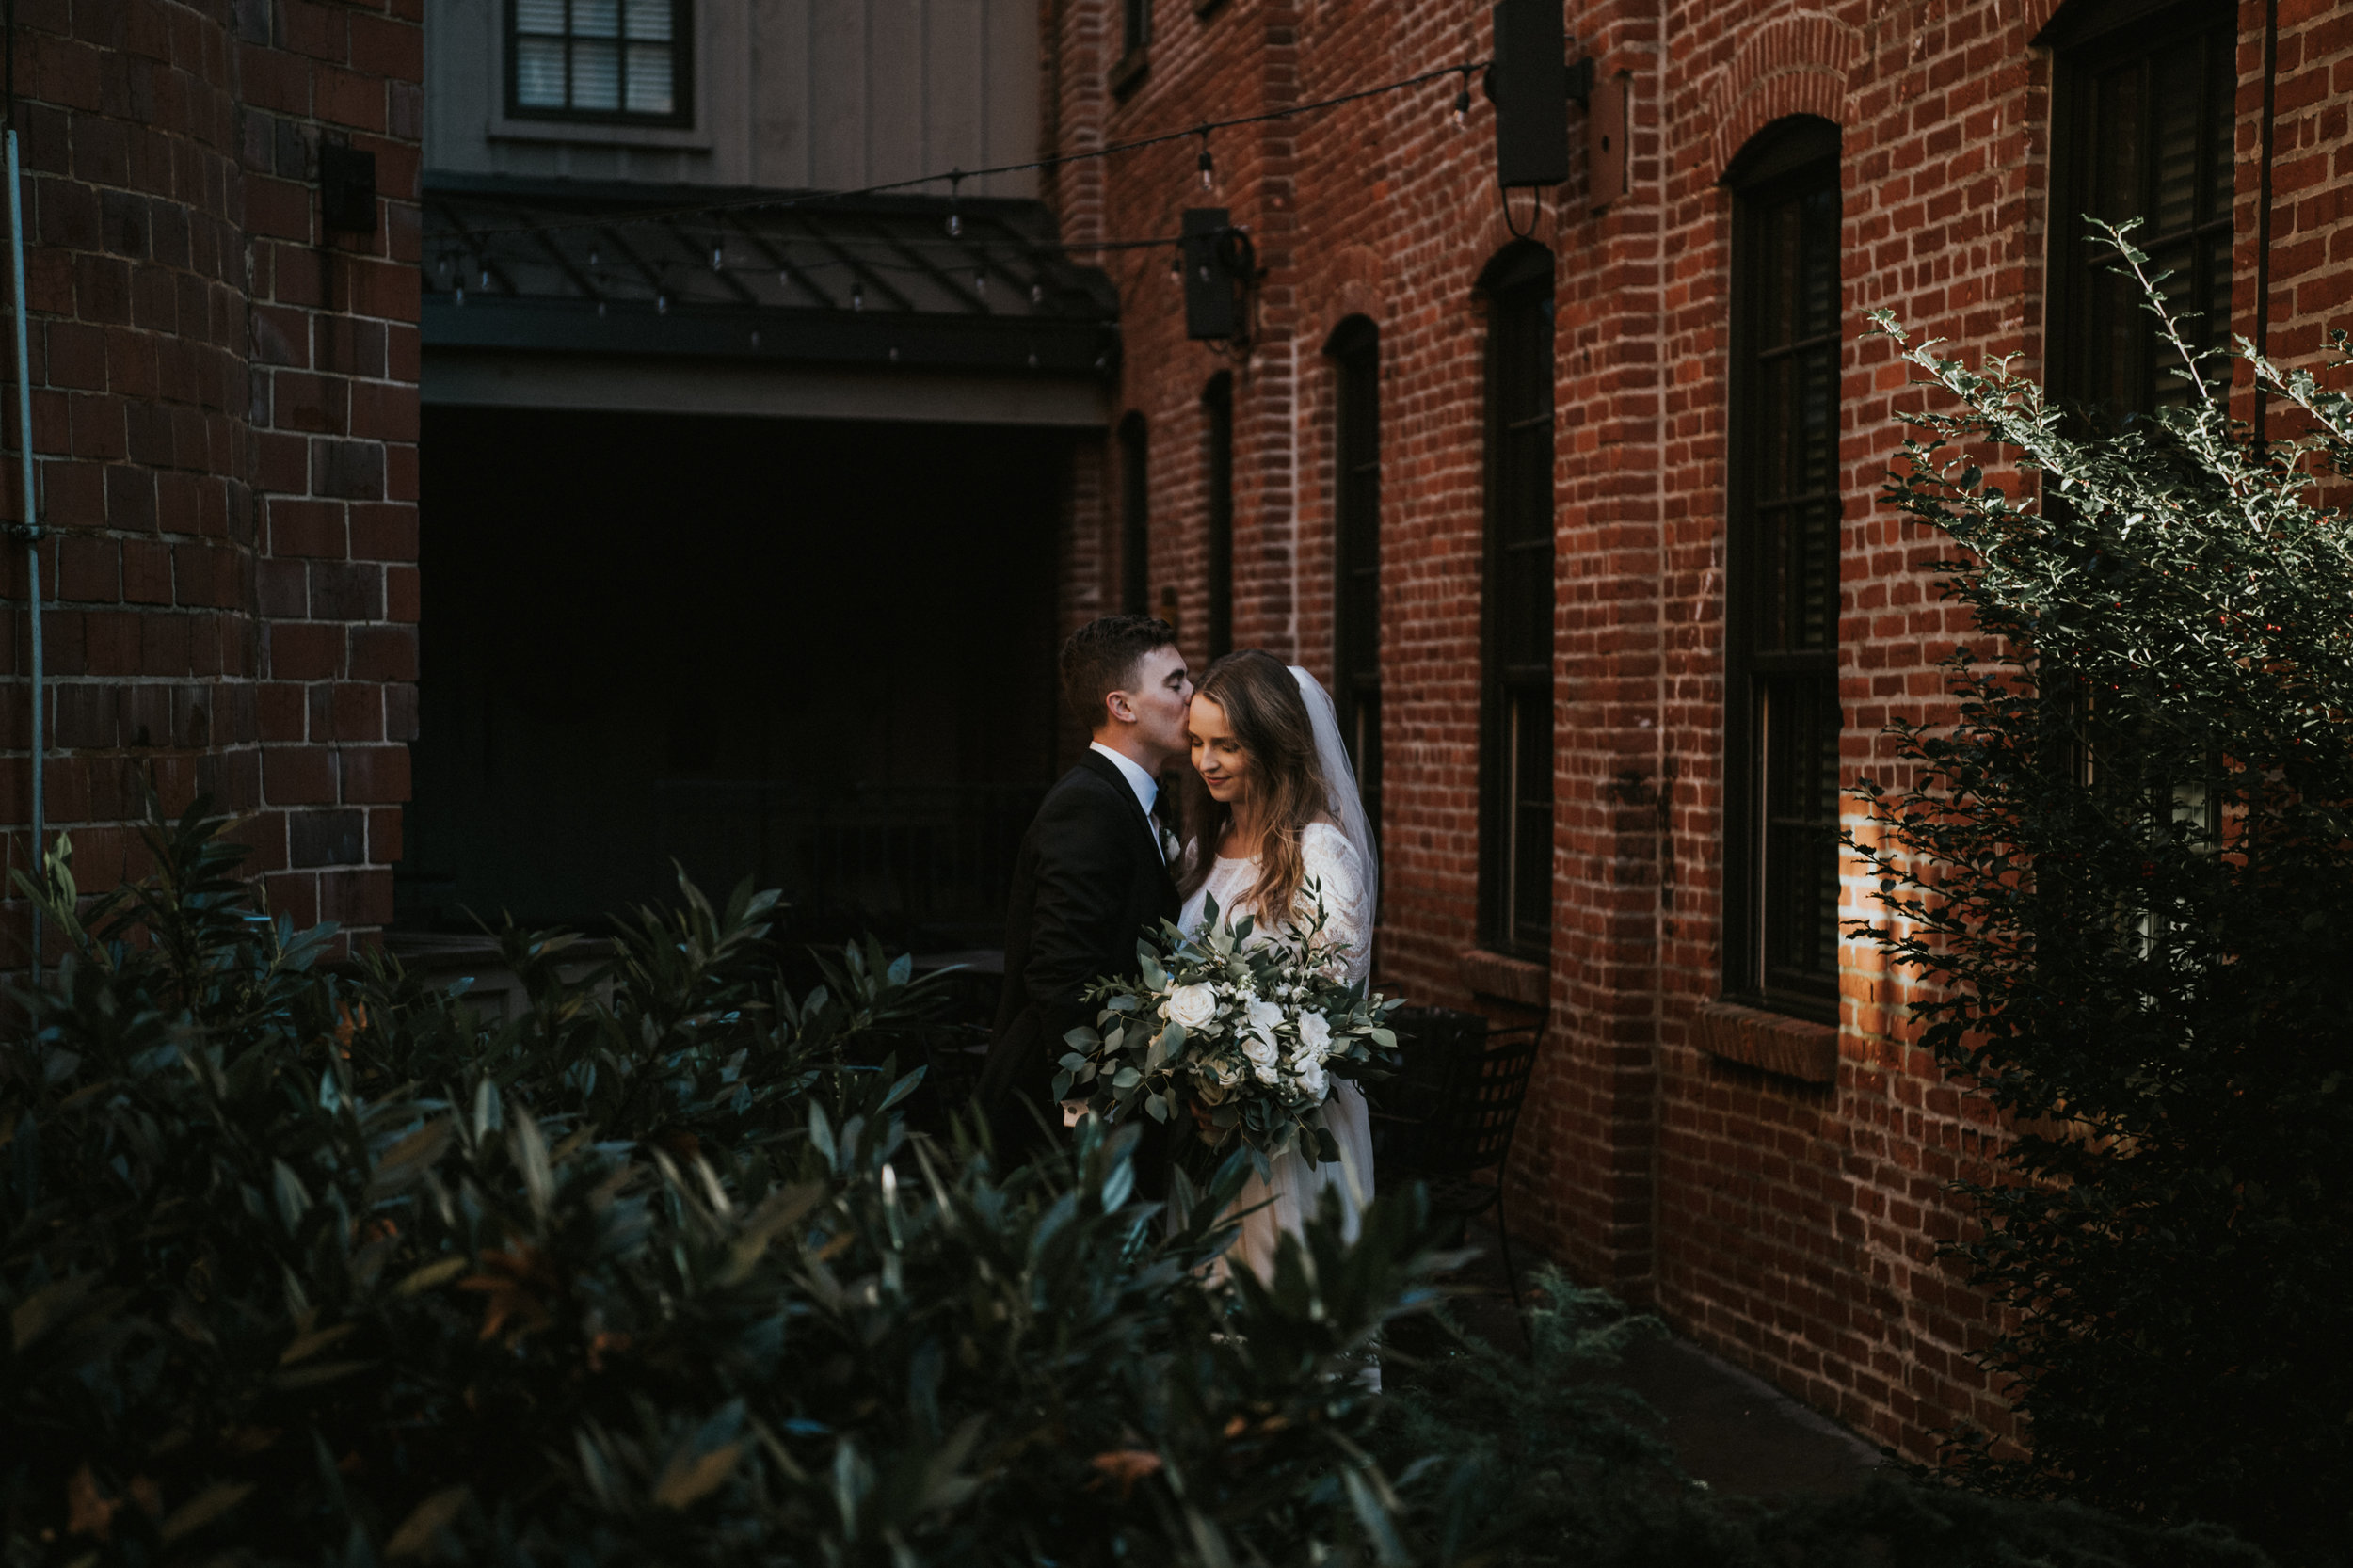 Wedding Photography + Filmmaking    Capturing real love stories   in the Lehigh Valley, Philadelphia + worldwide.